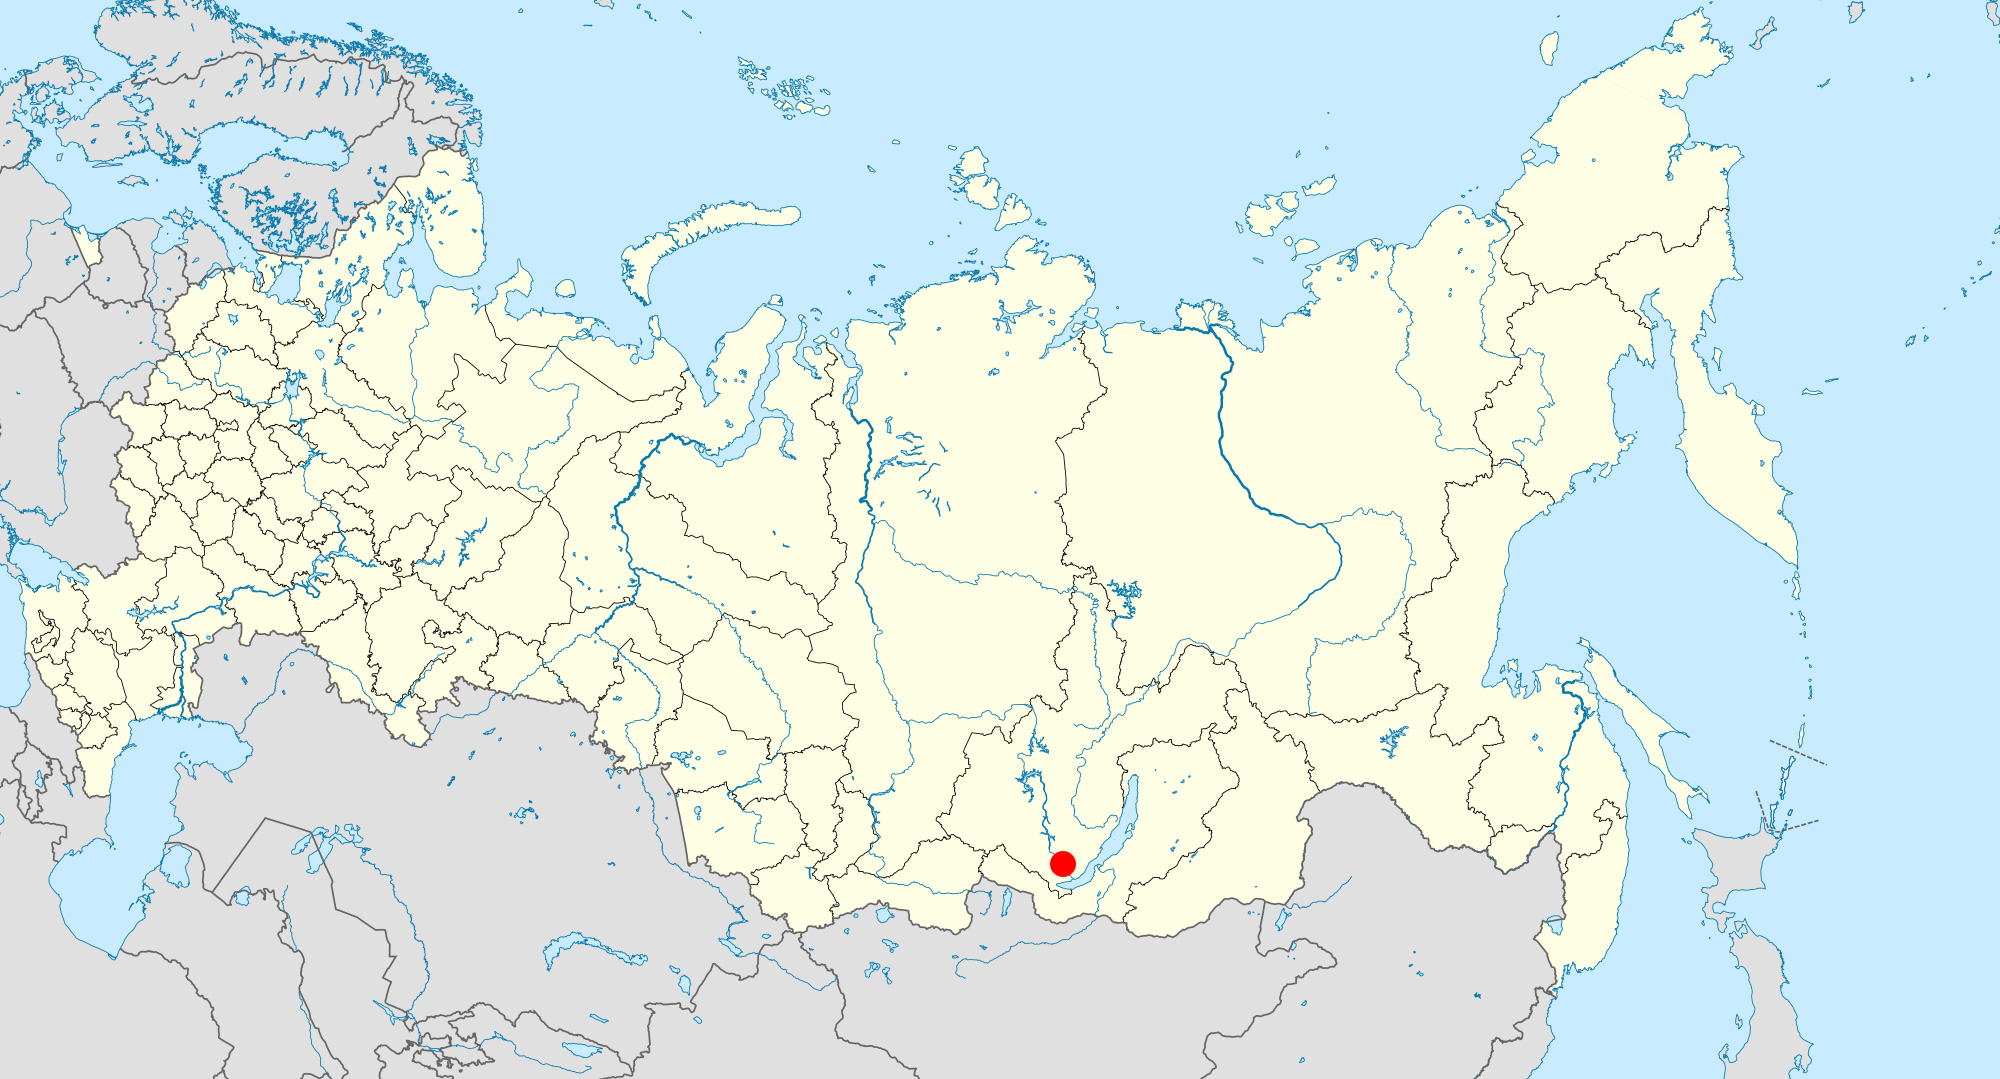 Location of Irkutsk, deep in Siberia.